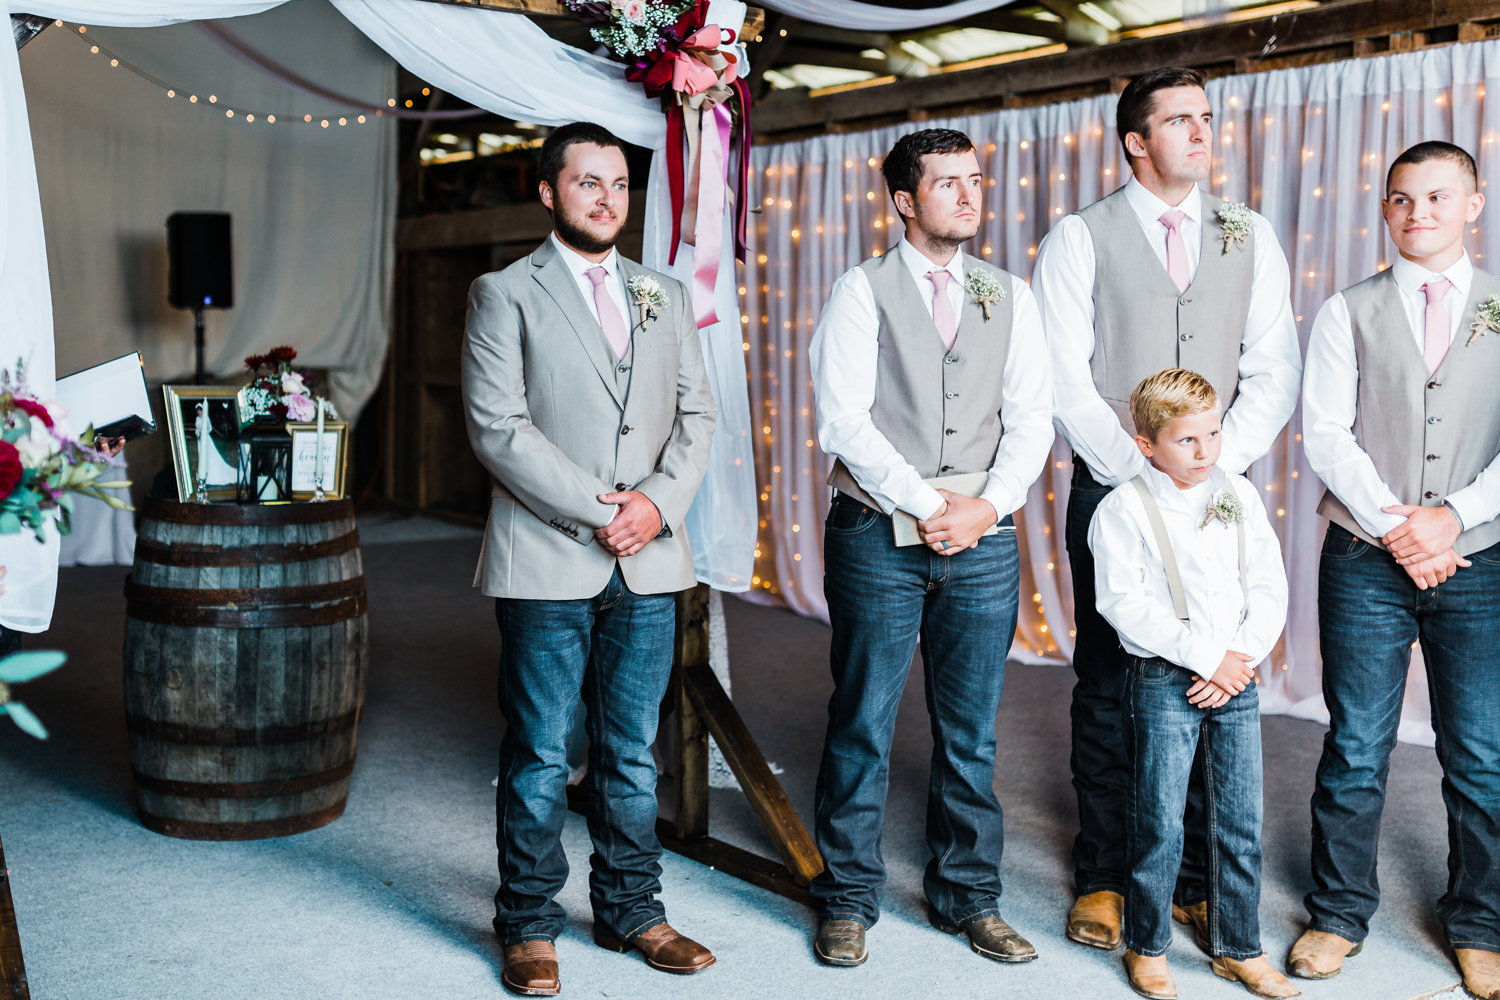 groom waits for his bride coming down the aisle - Carroll County, MD wedding photographer